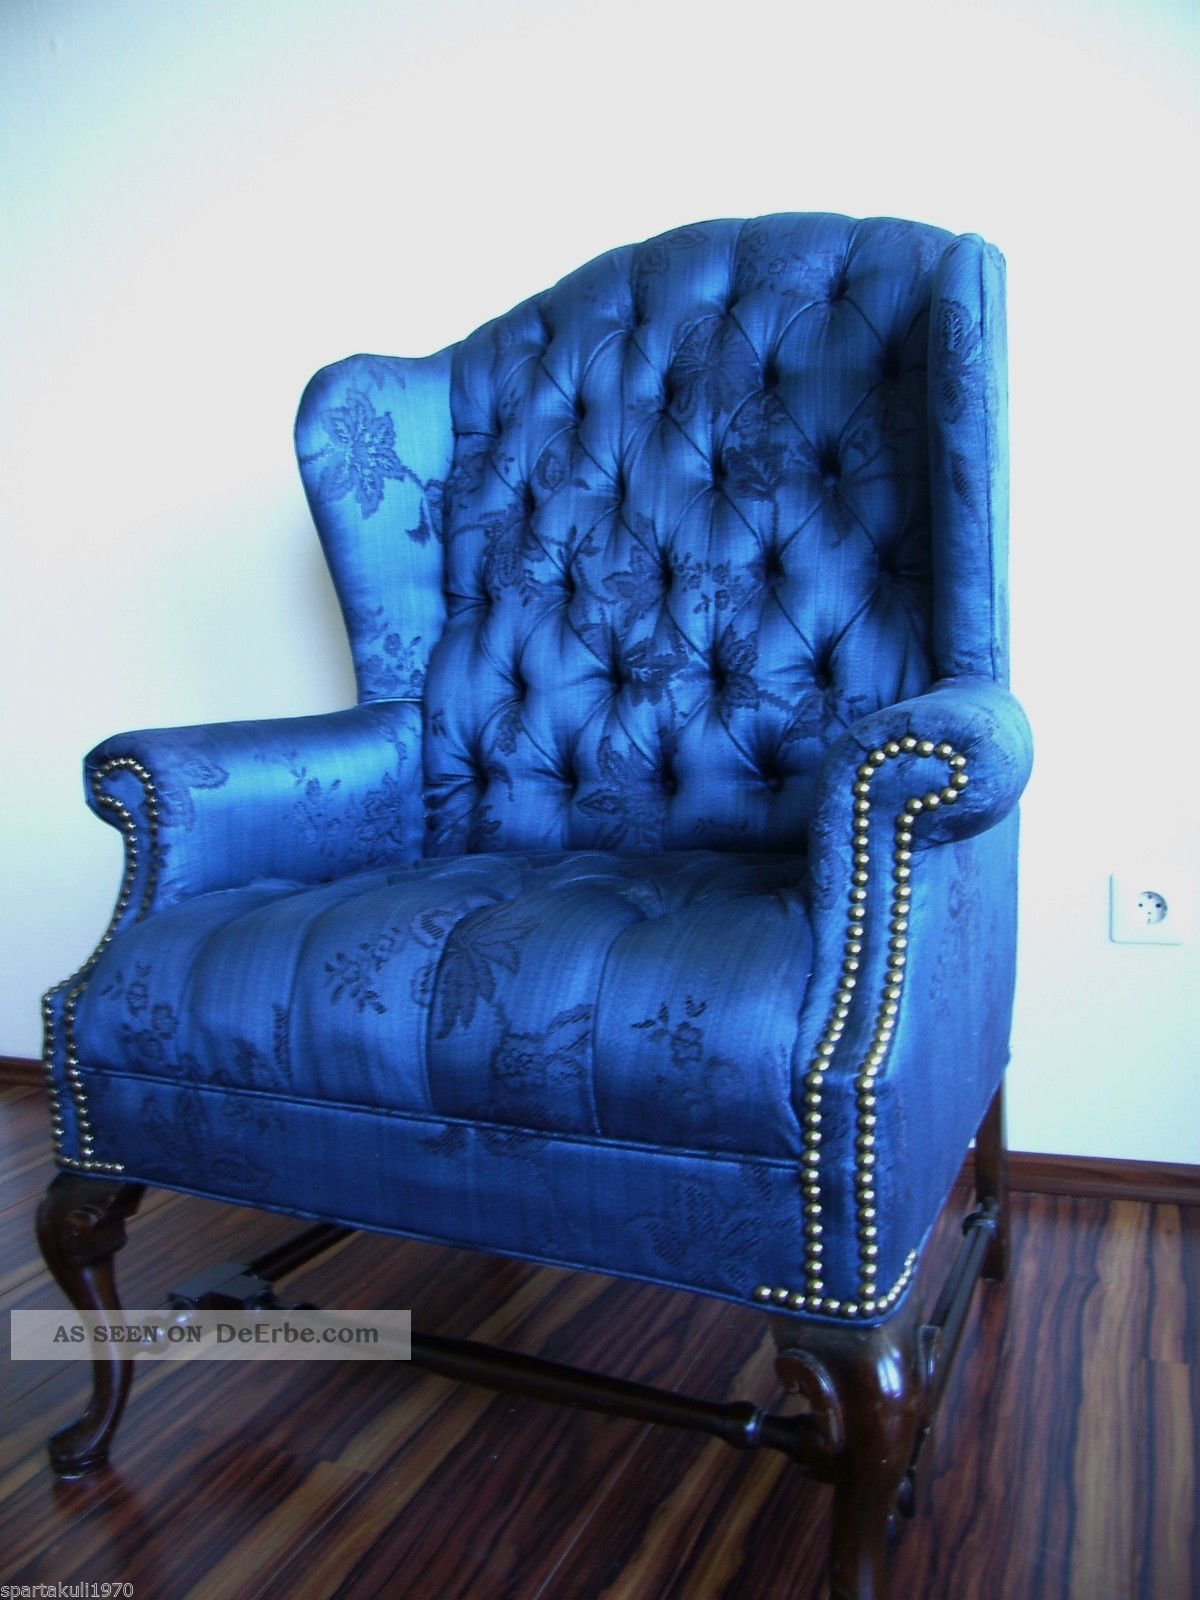 wundersch ner chesterfield sessel royal blau mahagoni mit. Black Bedroom Furniture Sets. Home Design Ideas